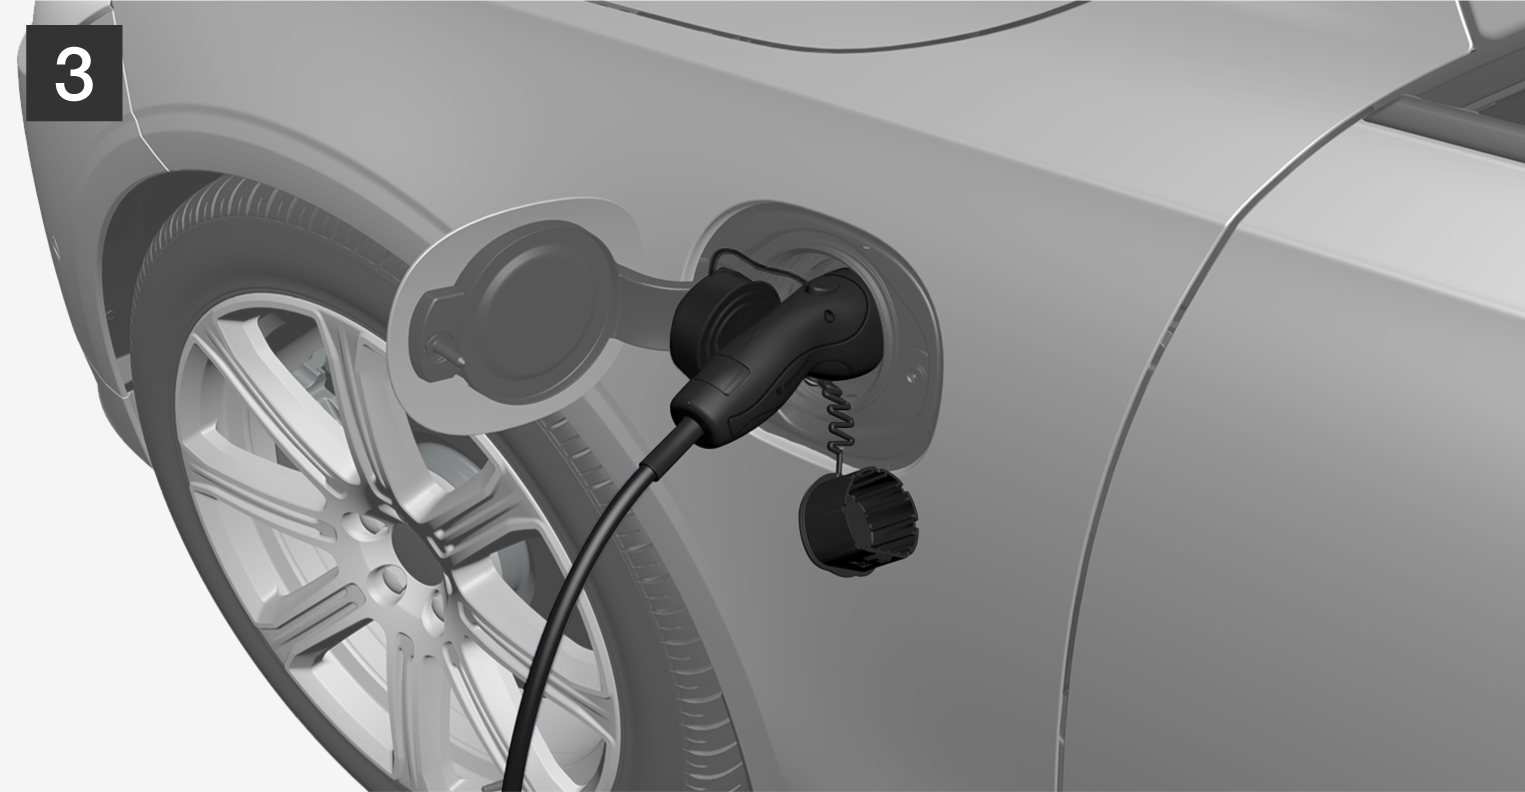 P5-2046-!XC90H-Charging protecting cover